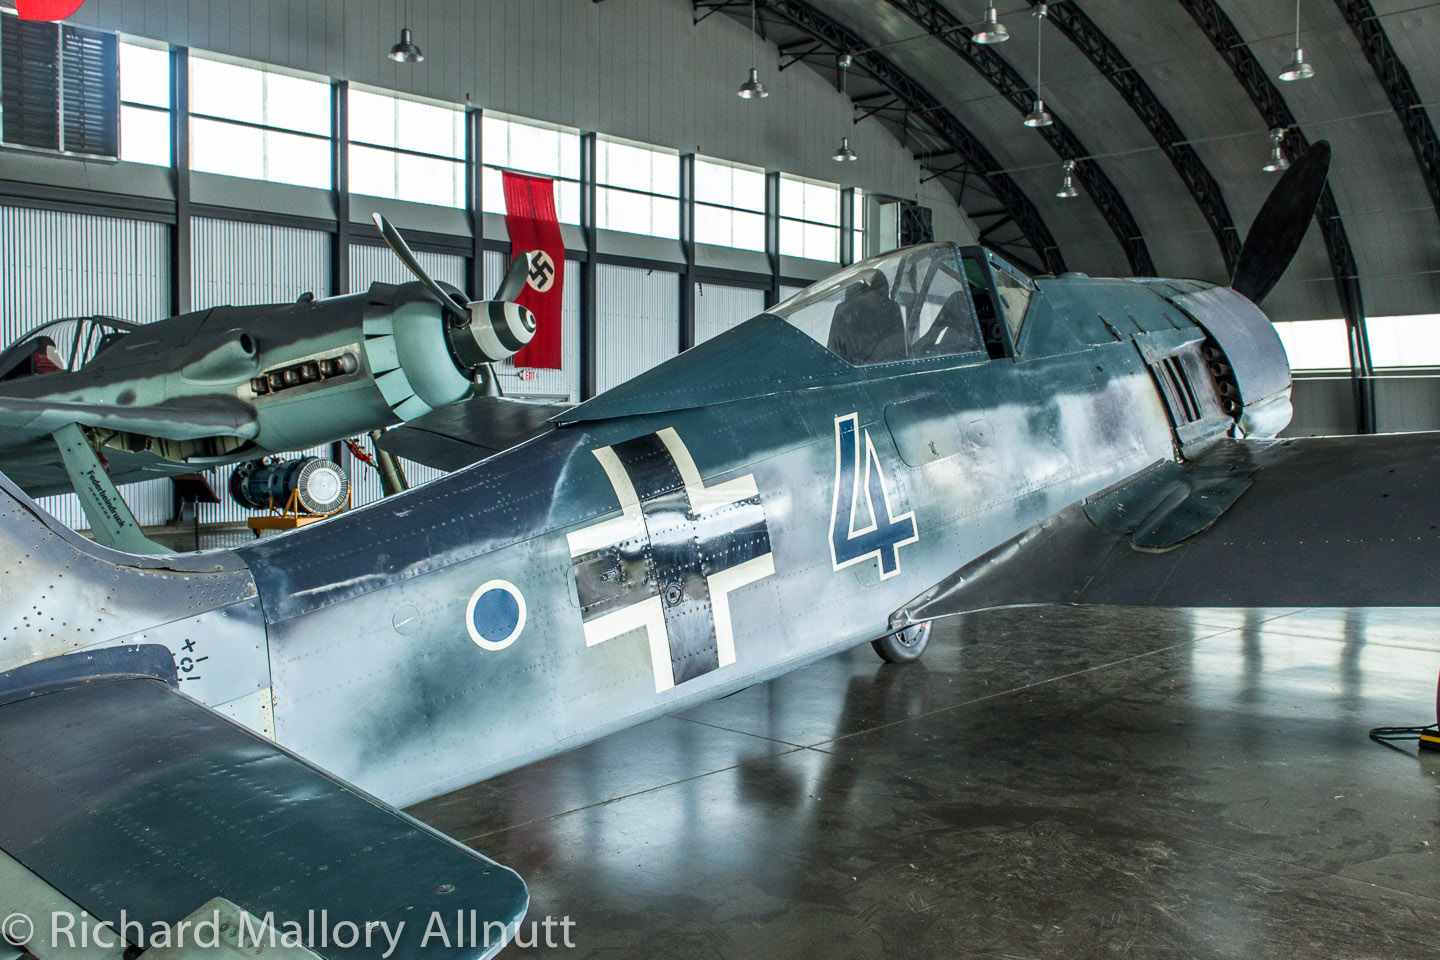 Two of Jerry Yagen's Fw-190s (an original A-model in foreground, and a replica D model in the back) sitting inside an original Luftwaffe hangar imported from Cottbus, Germany. (photo by Richard Mallory Allnutt)